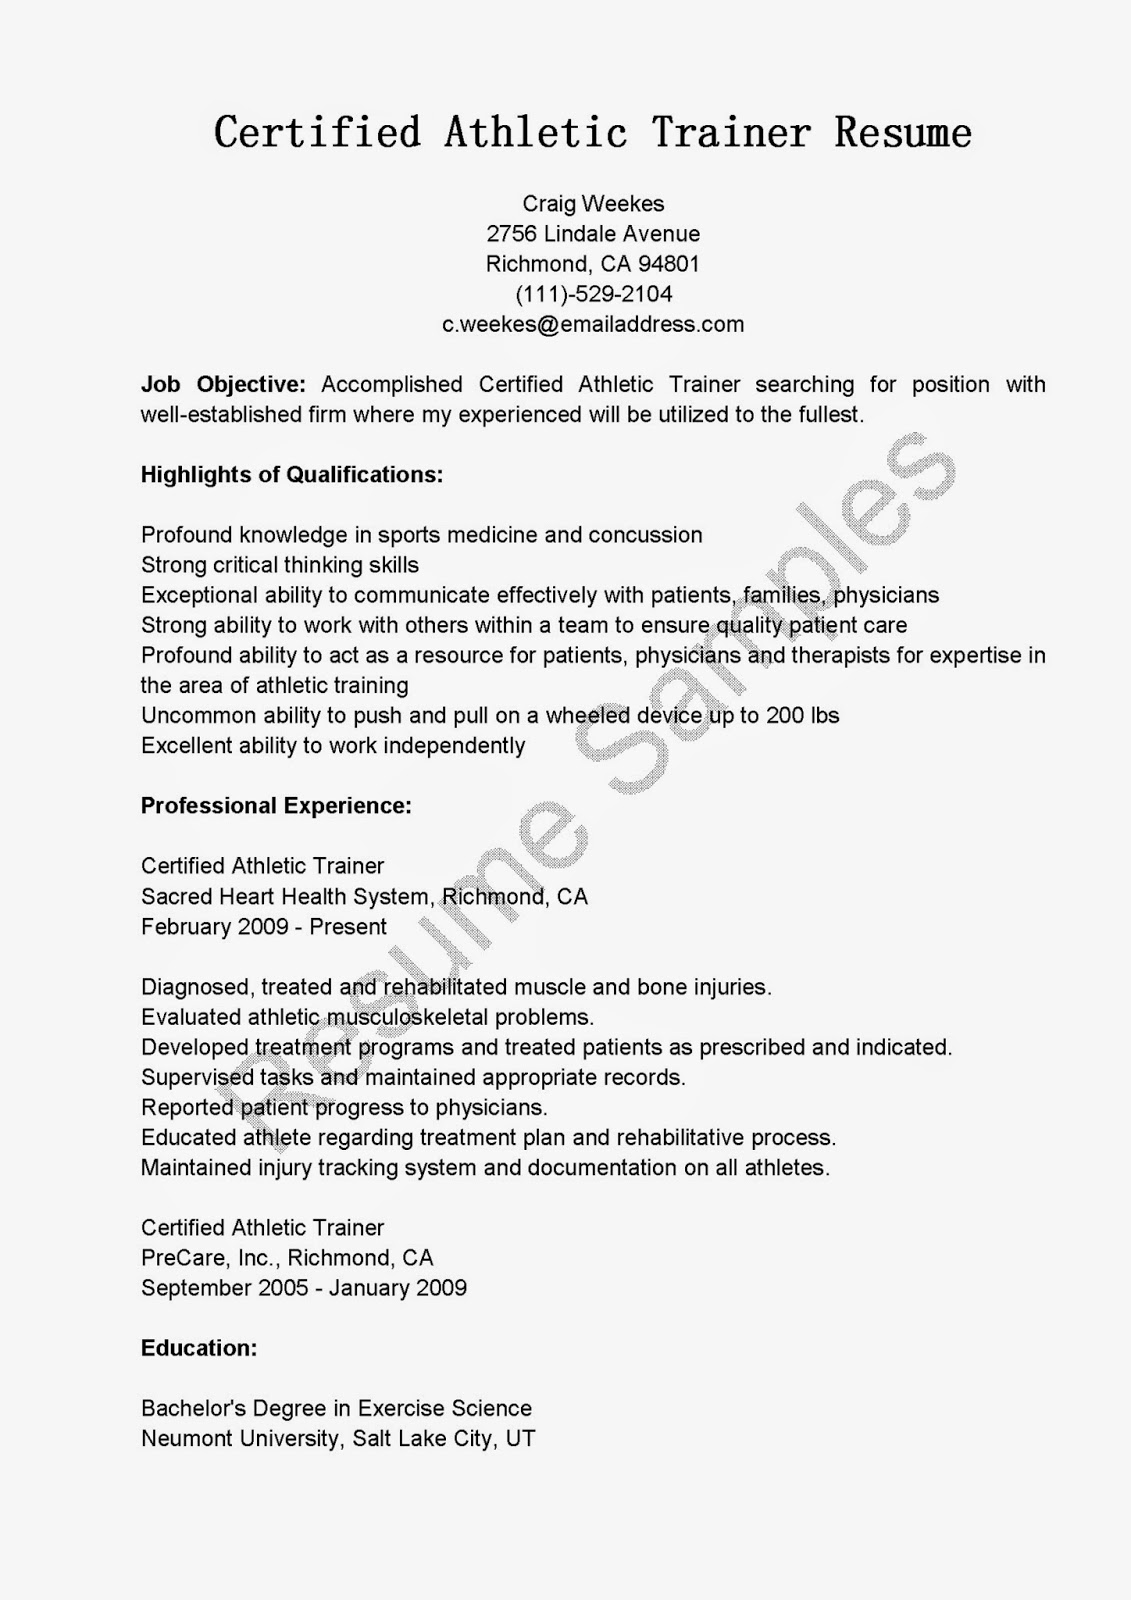 ece resume format resume format download pdf buyers resume buyers resume entry level retail buyer resume - Basic Sample Resume Format